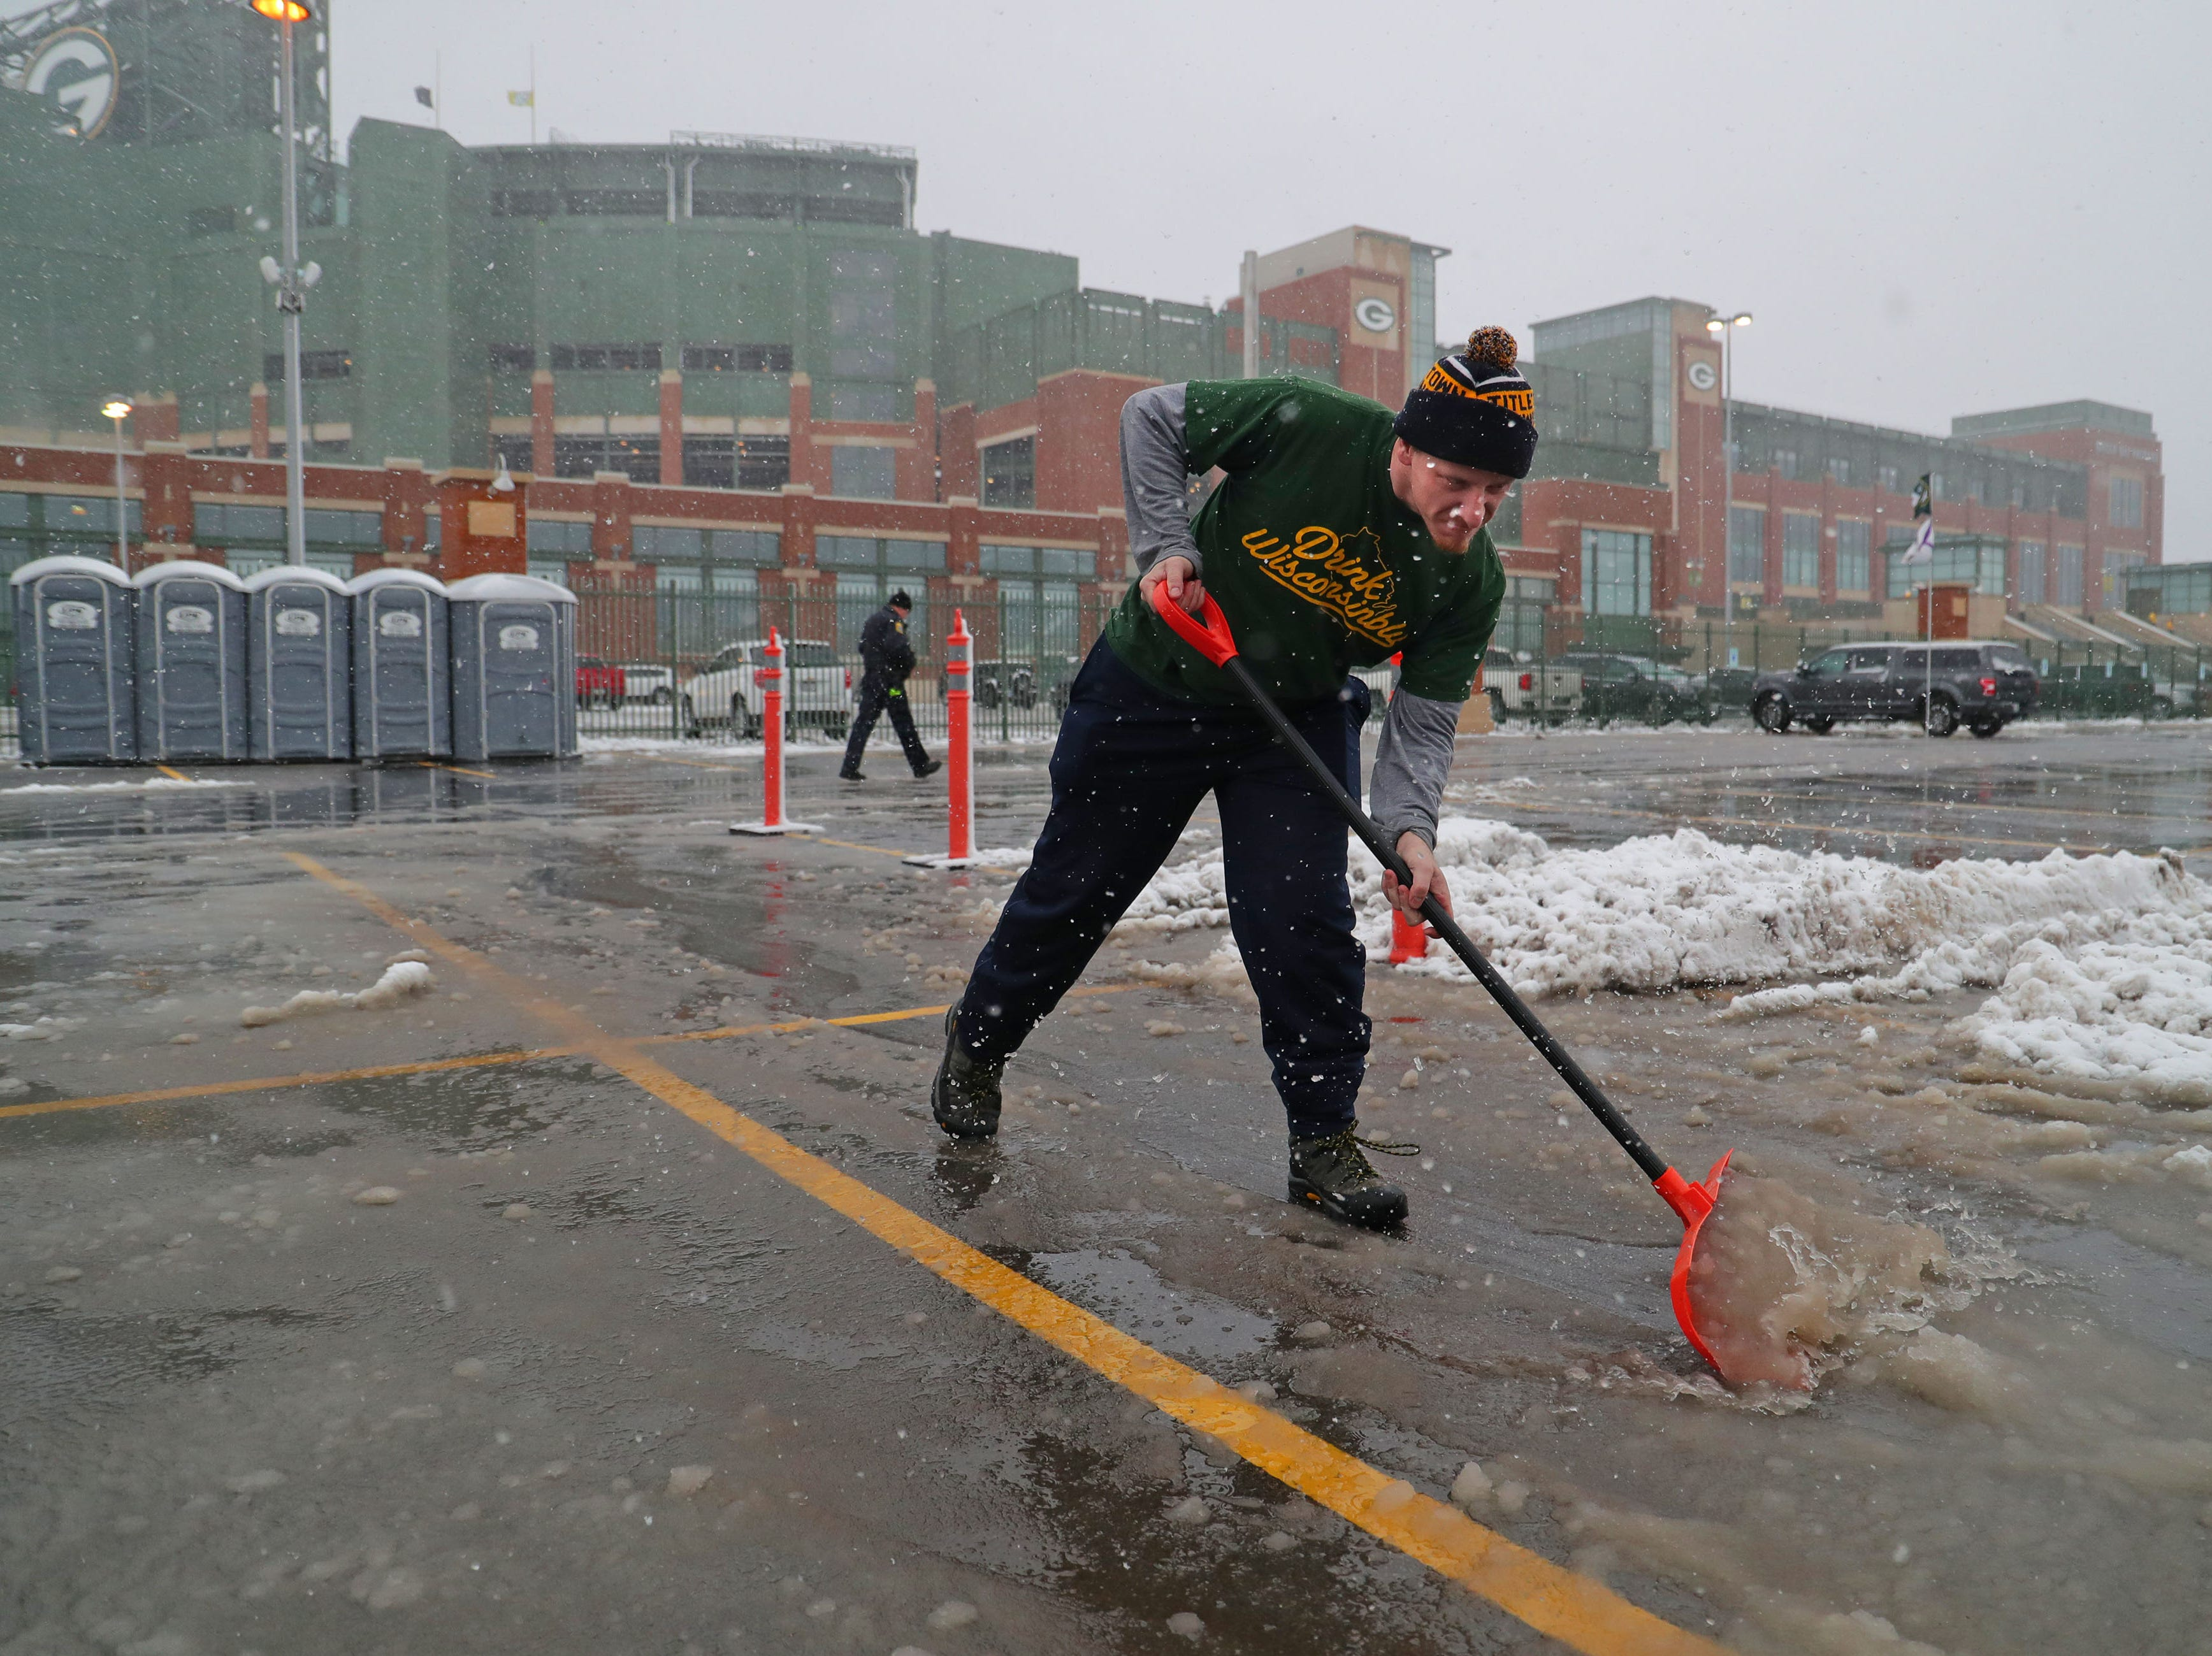 Robert Clarksen, from St. Paul Minn., shovels the snow and slugs from his parking space while tailgating before the Green Bay Packers game against the Arizona Cardinals at Lambeau Field in Green Bay, Wis. on Sunday, December 2, 2018.